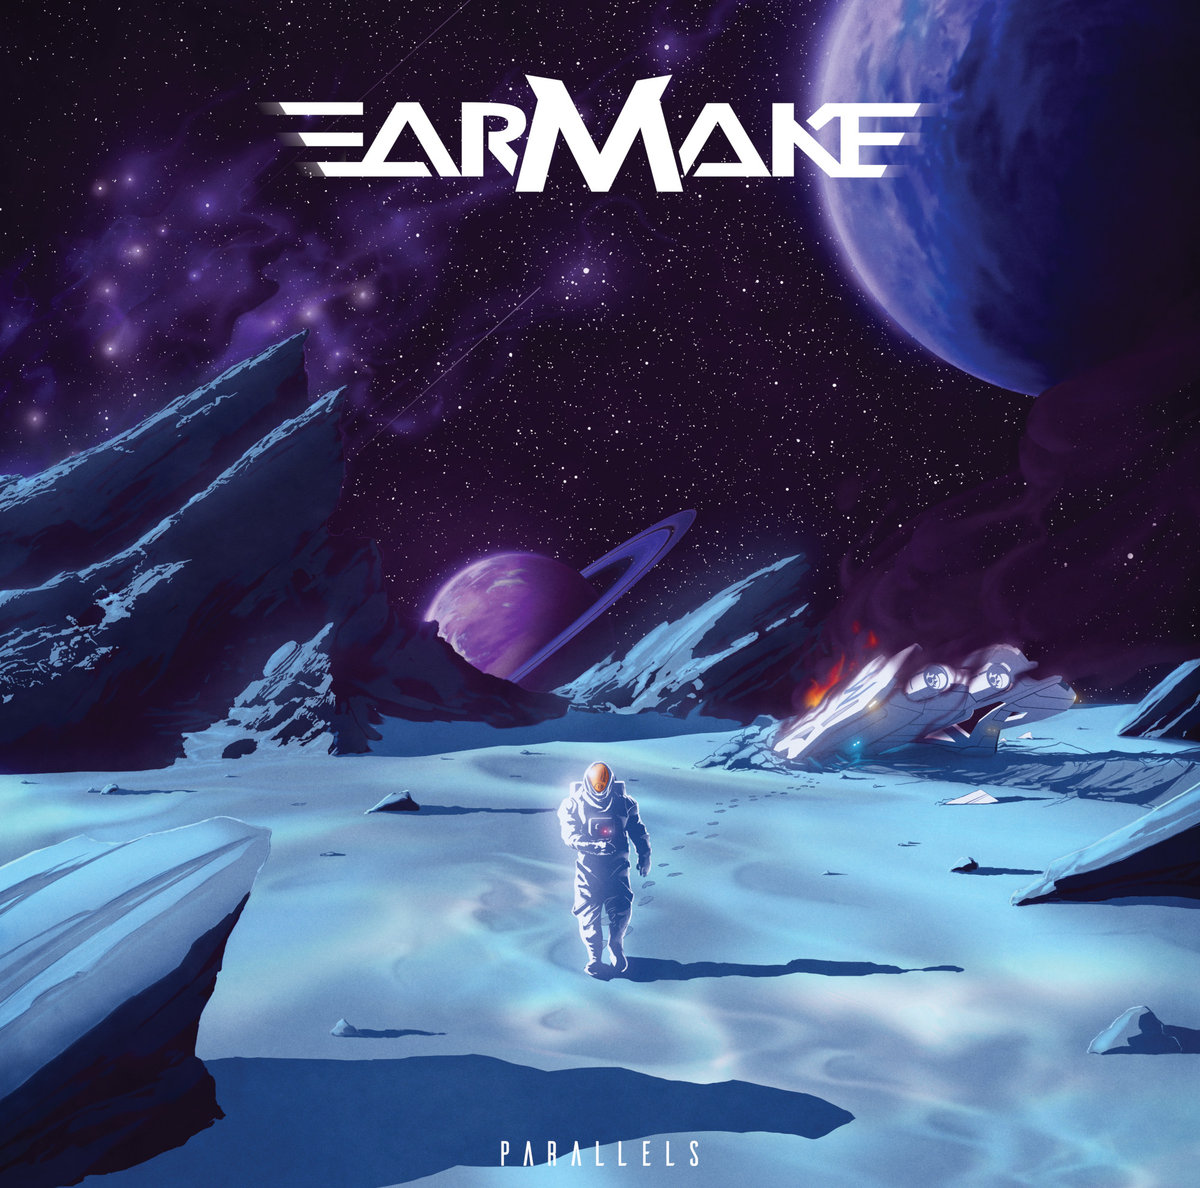 a1326825031 10 - Earmake - Parallels Album Review